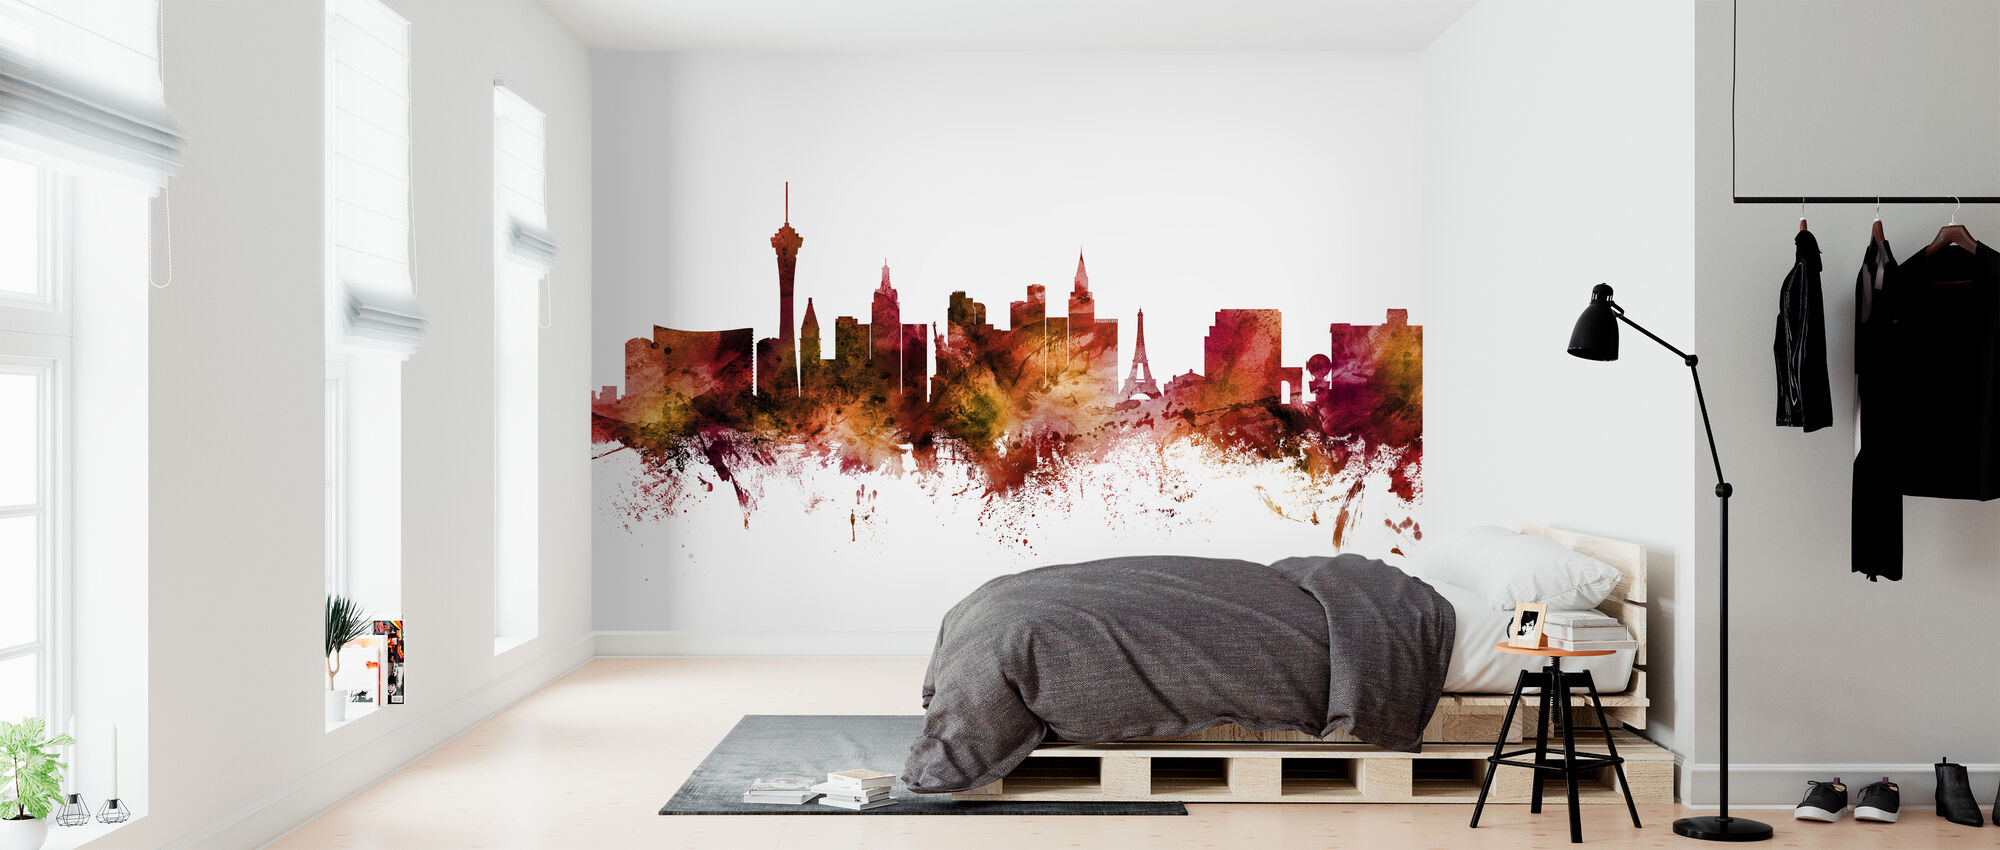 Las Vegas Nevada Skyline - Wallpaper - Bedroom